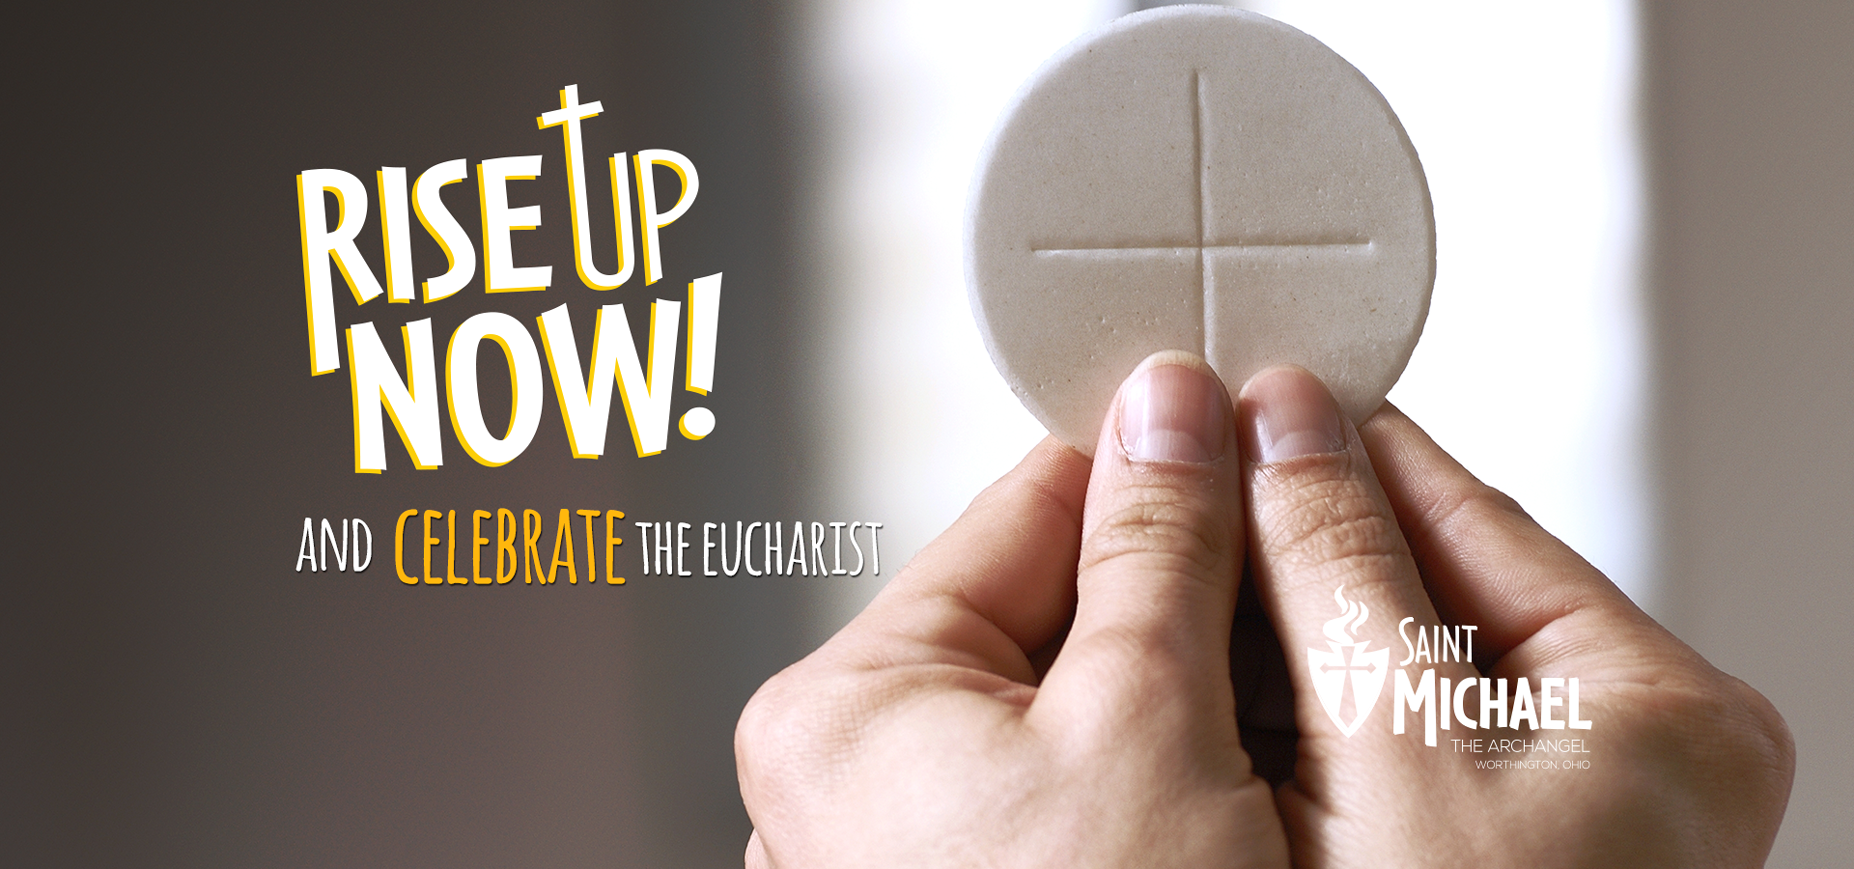 Rise Up! Celebrate the Eucharist